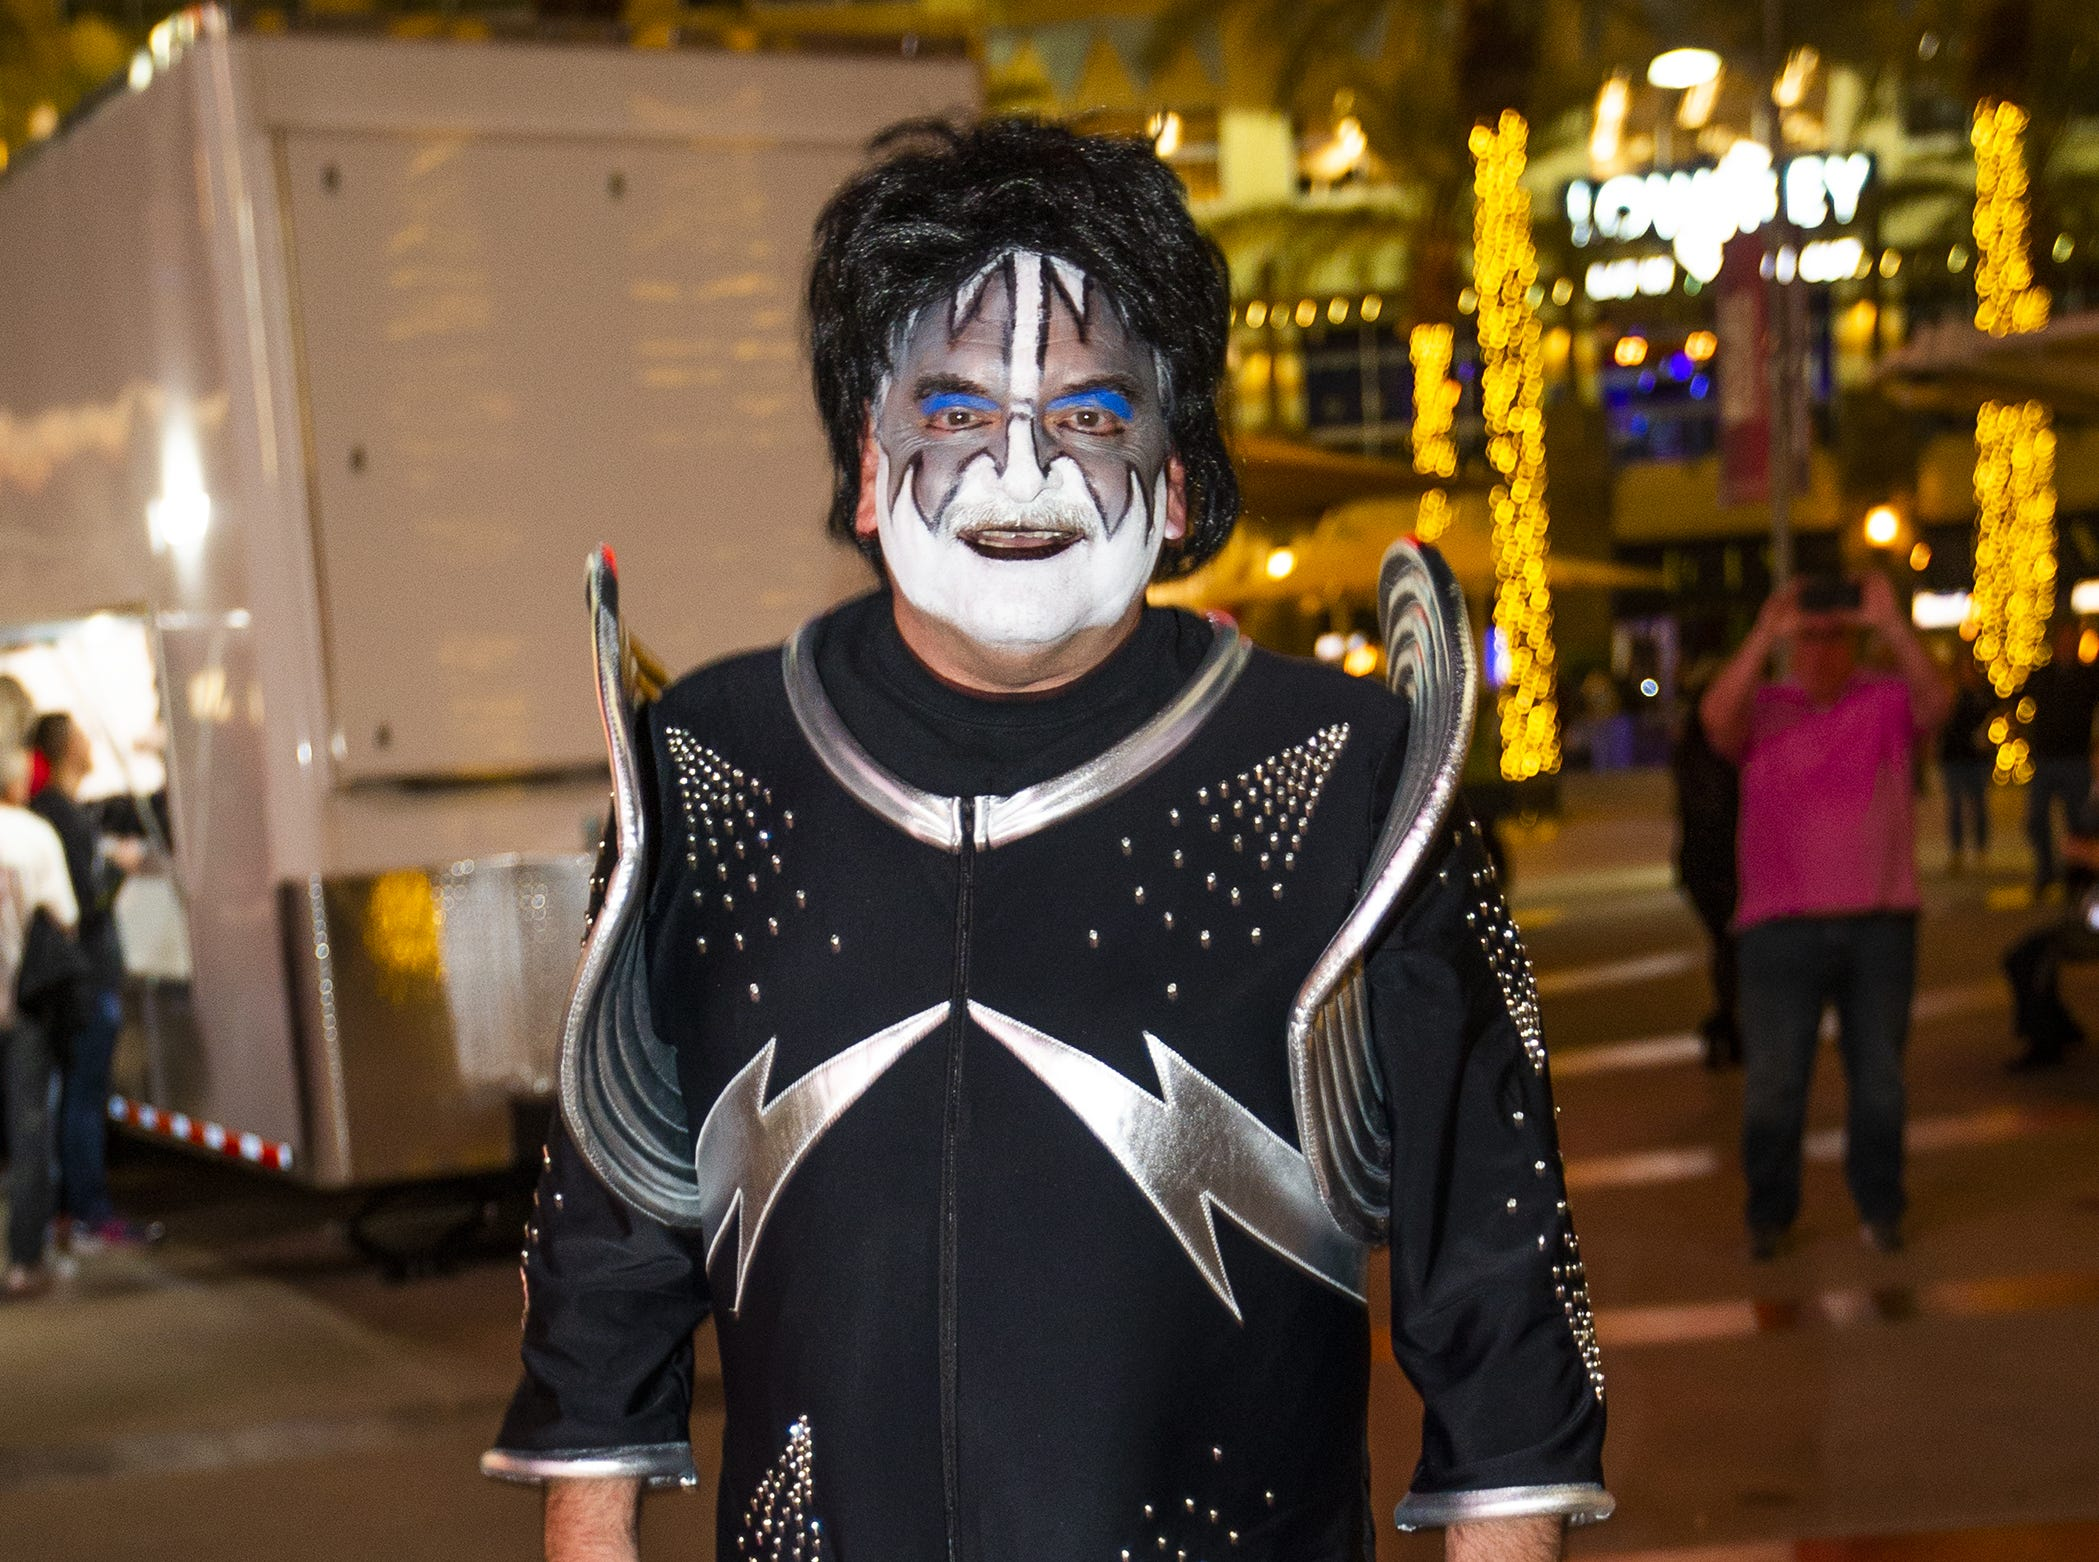 Mike Carico, 56, of Gilbert, shows off his best KISS makeup prior to the concert by the famed group at Gila River Arena in Glendale on Wednesday, Feb. 13, 2019.  The concert was part of the End of the Road World Tour, the band's farewell to the fans.